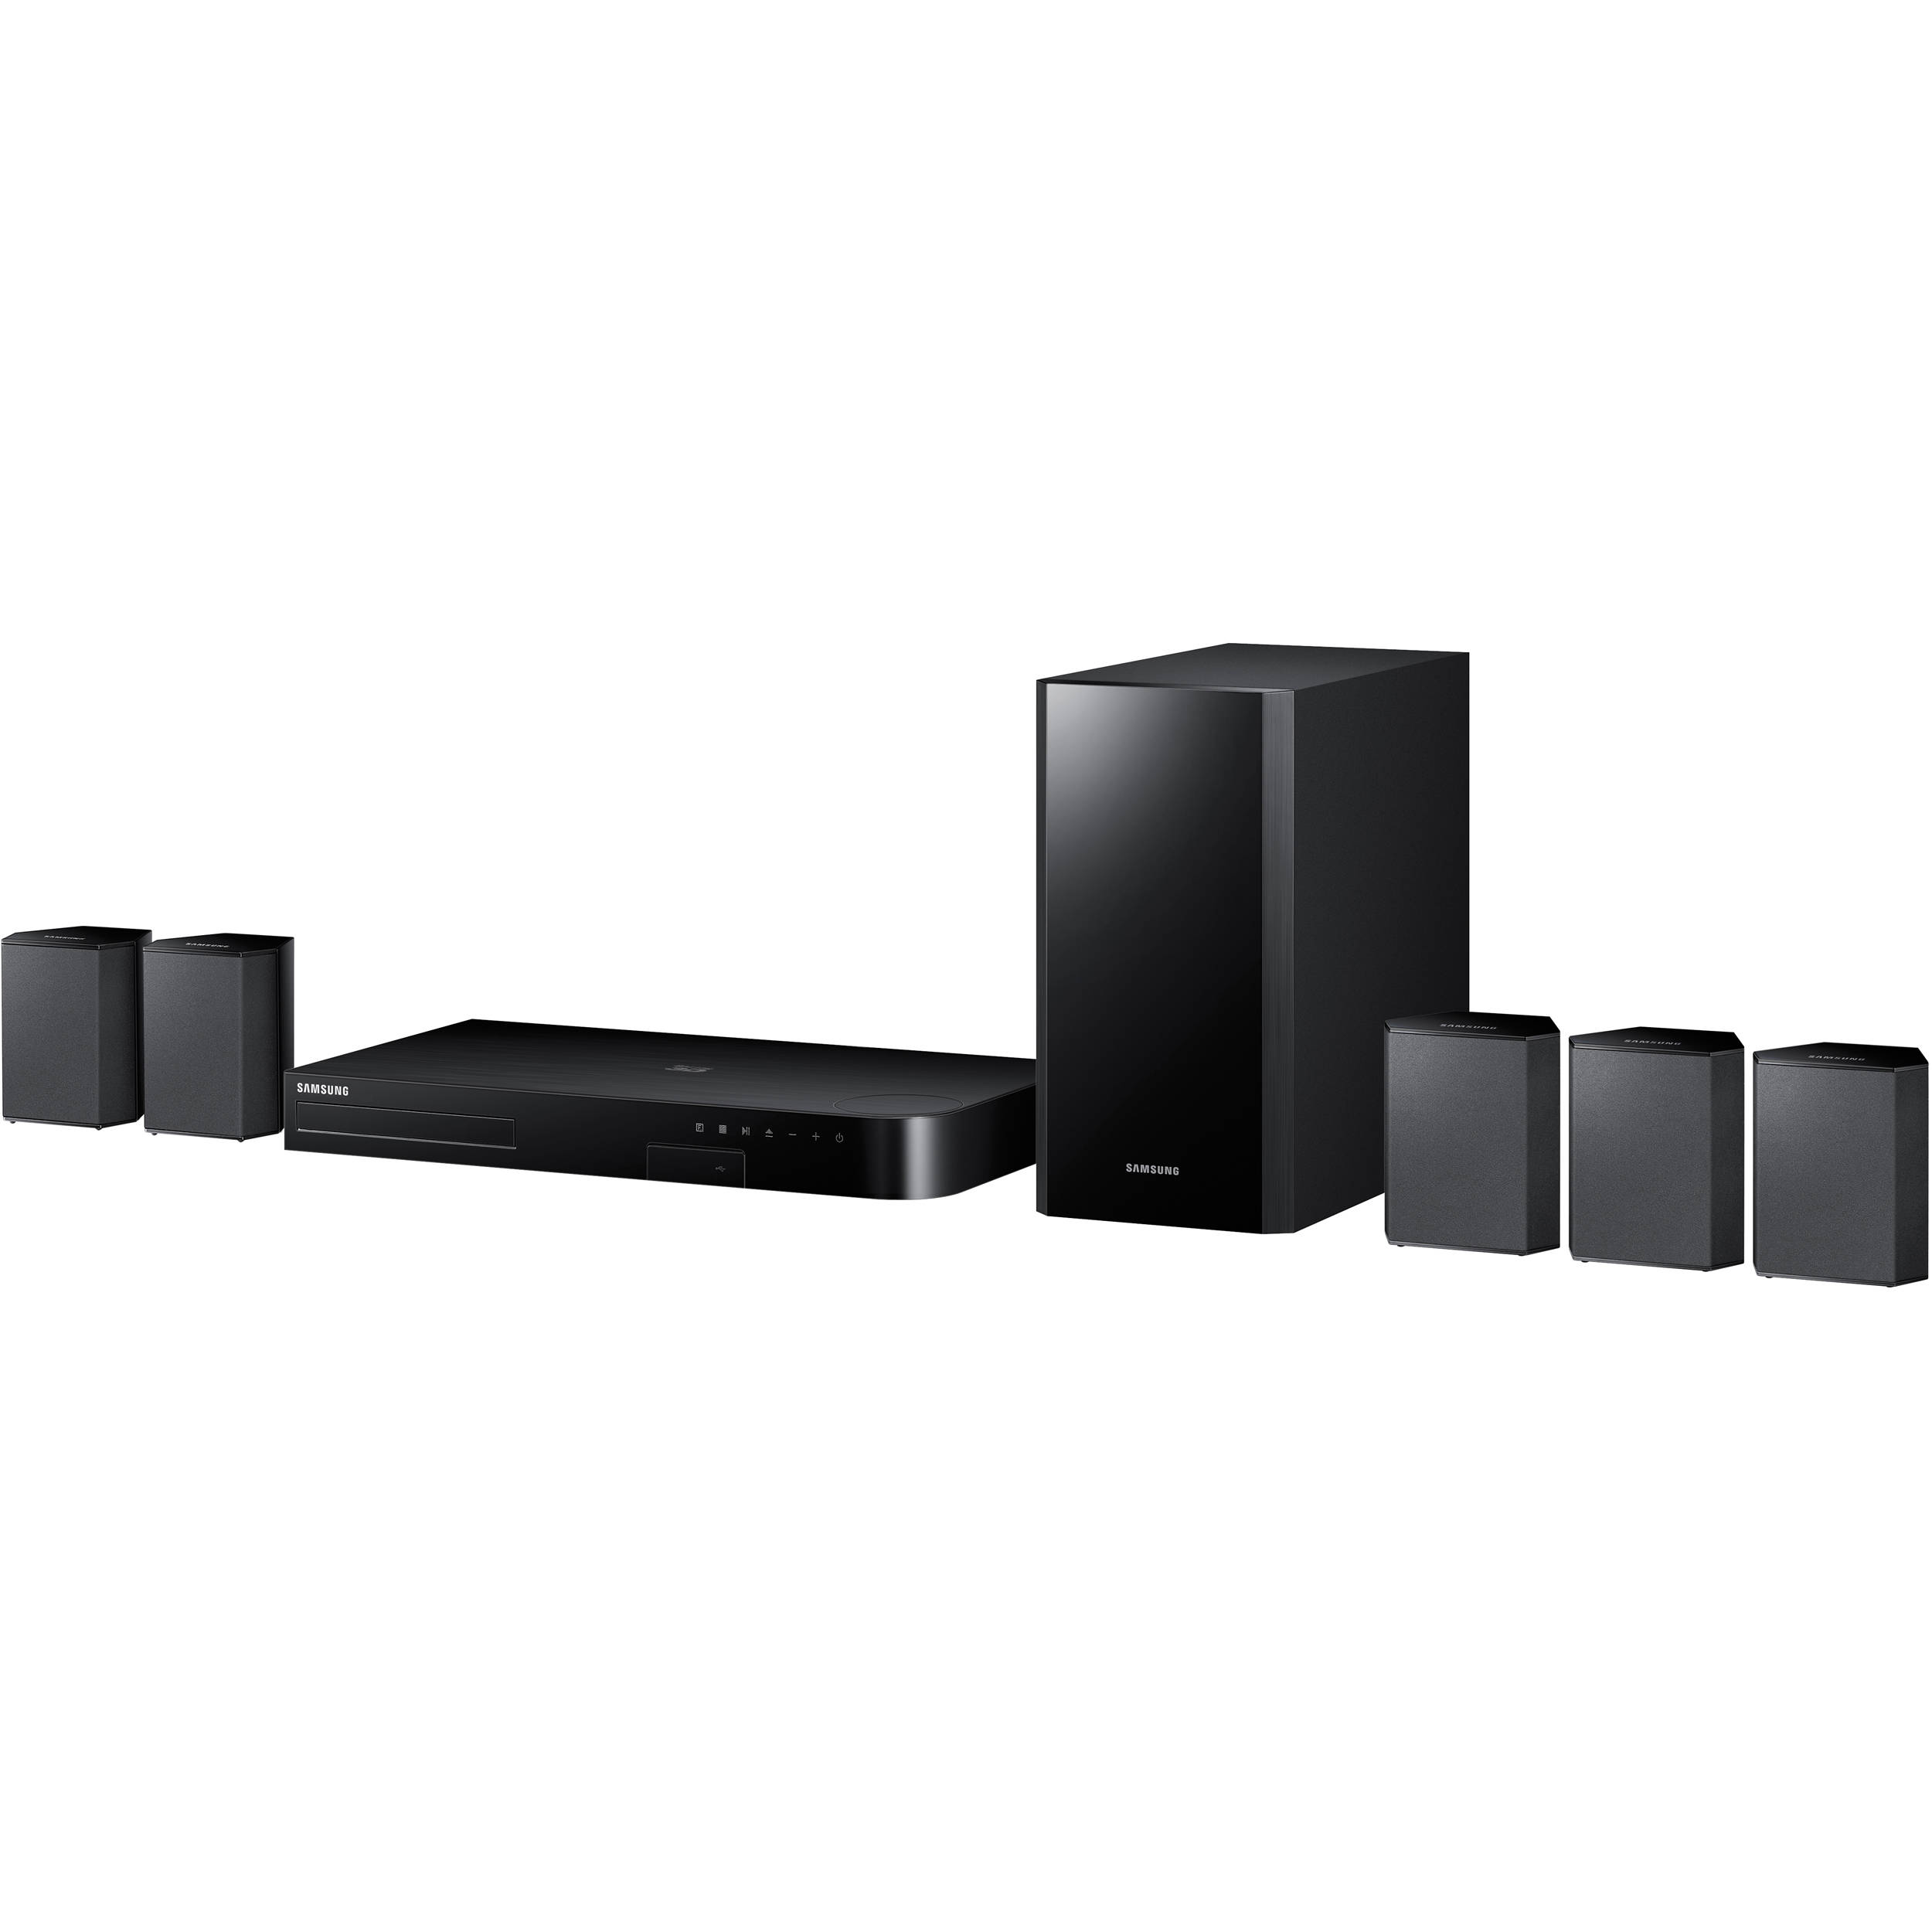 Samsung 3D Smart Home Theatre